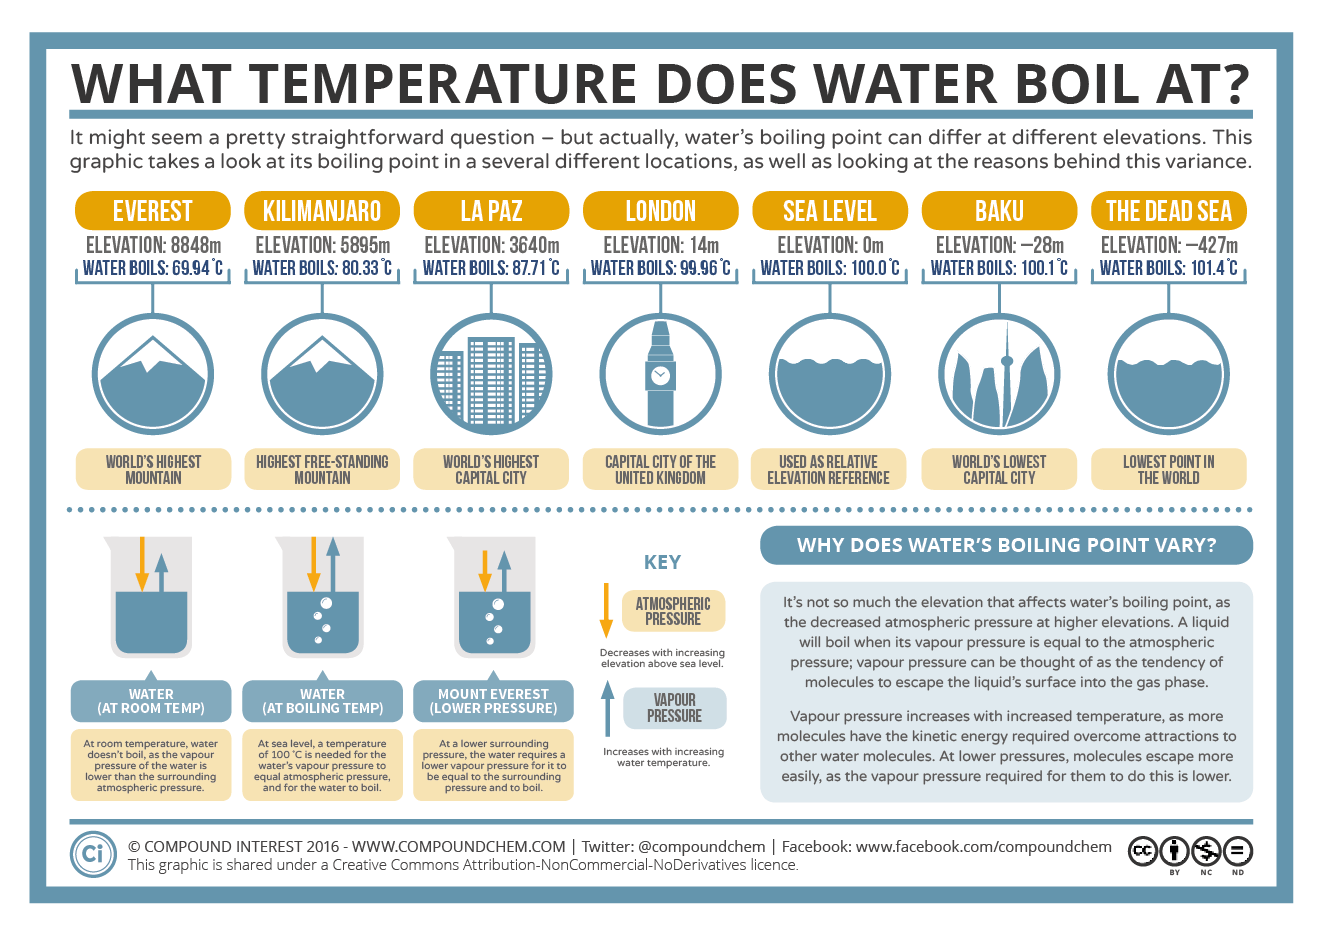 Compound Interest What Temperature Does Water Boil At Boiling - What's the elevation here